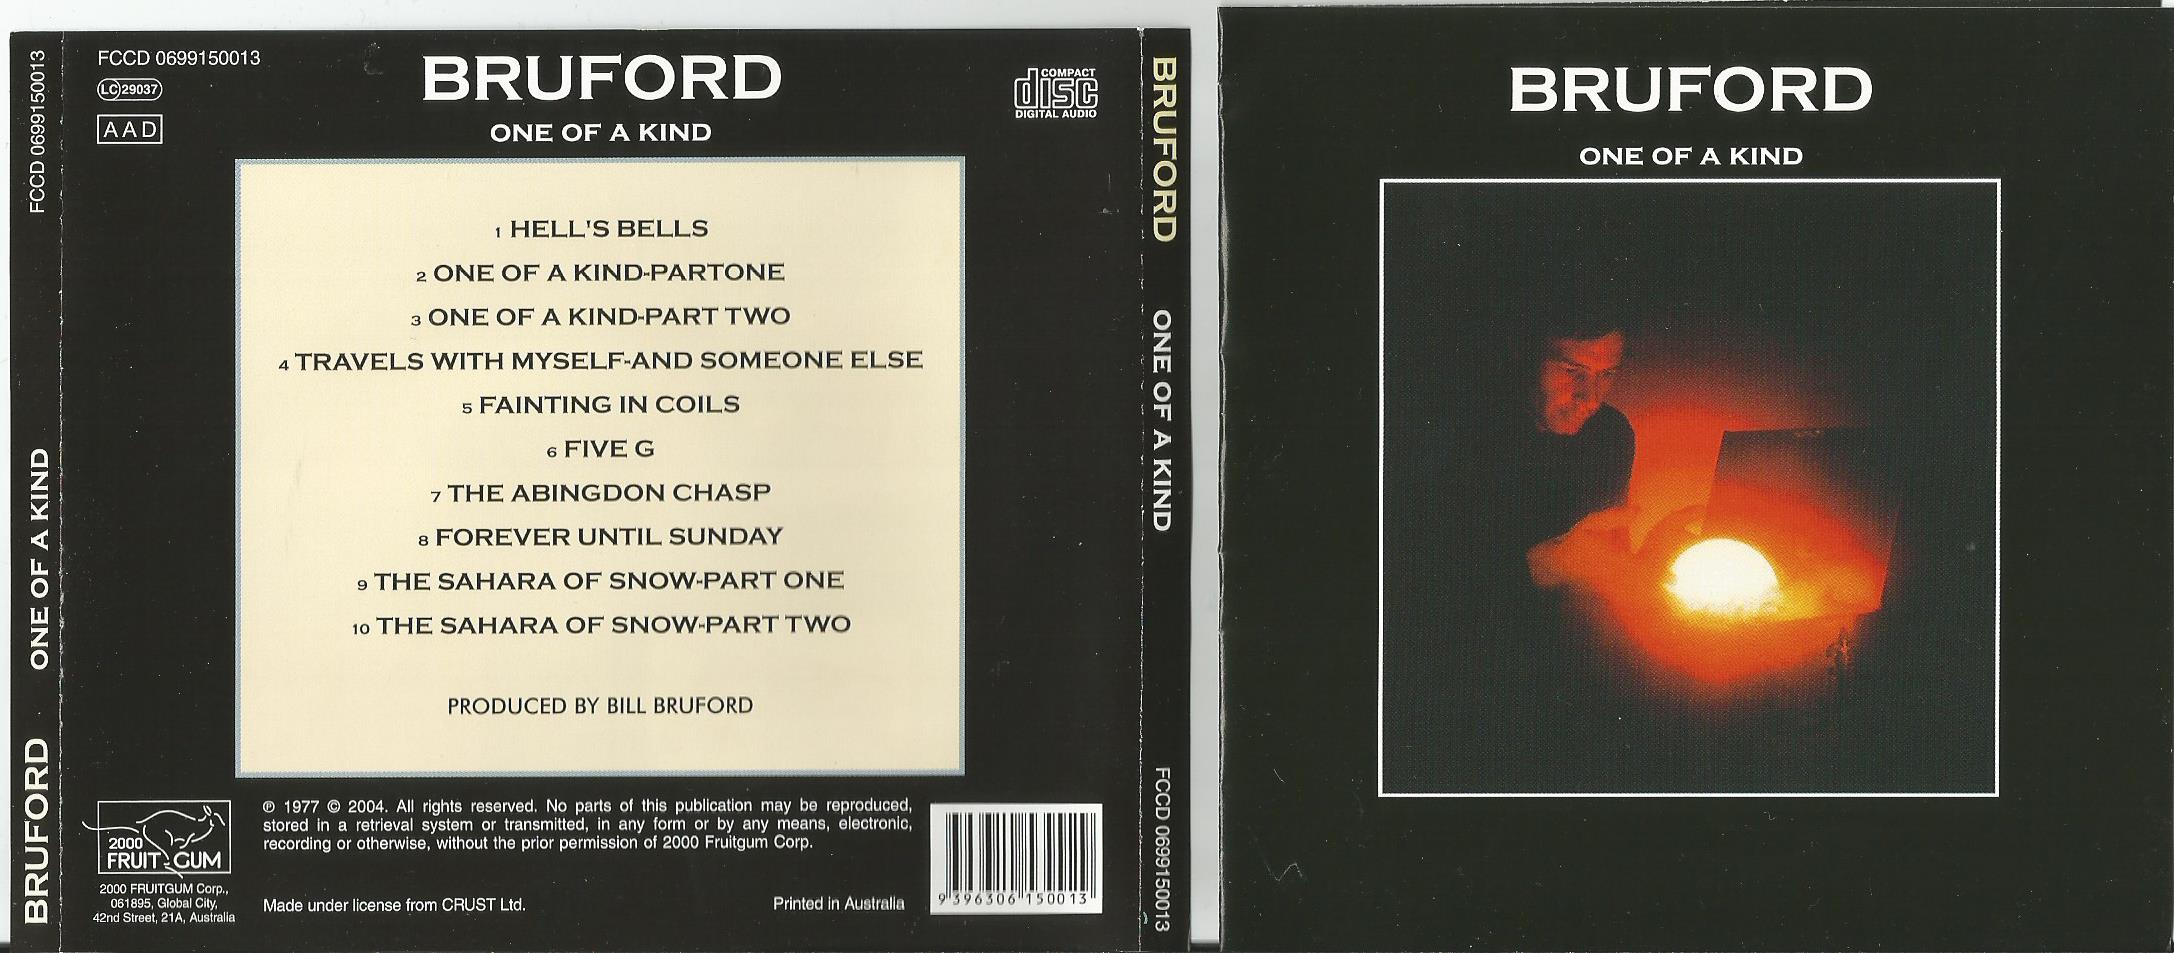 Bruford One Of A Kind Vinyl Records Lp Cd On Cdandlp